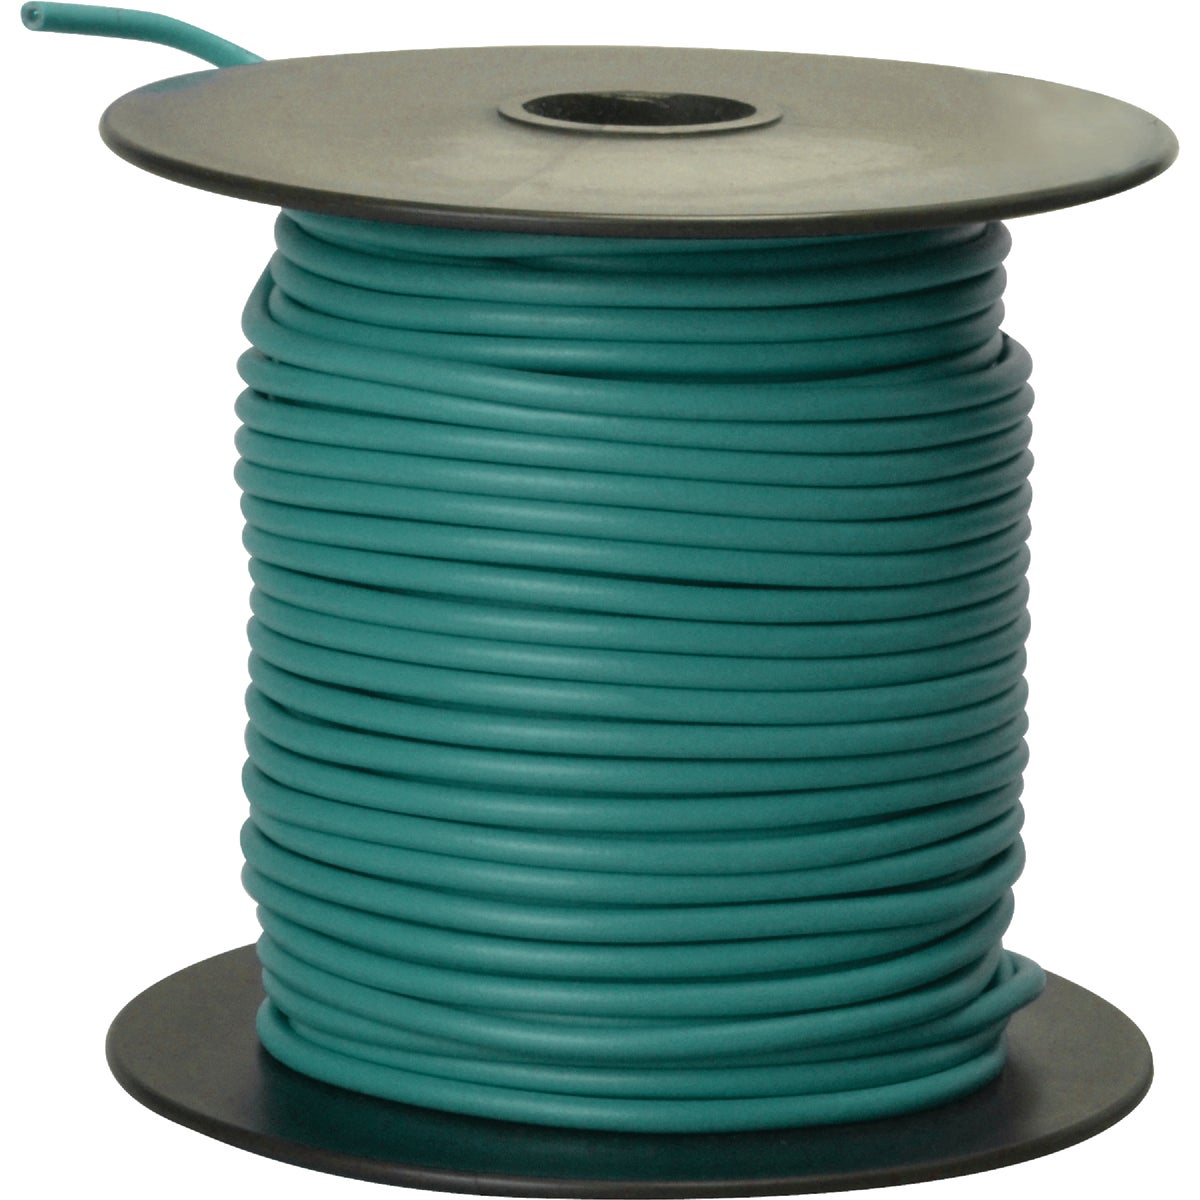 100' 16GA GRN AUTO WIRE - 16-100-15 by Woods Wire Coleman